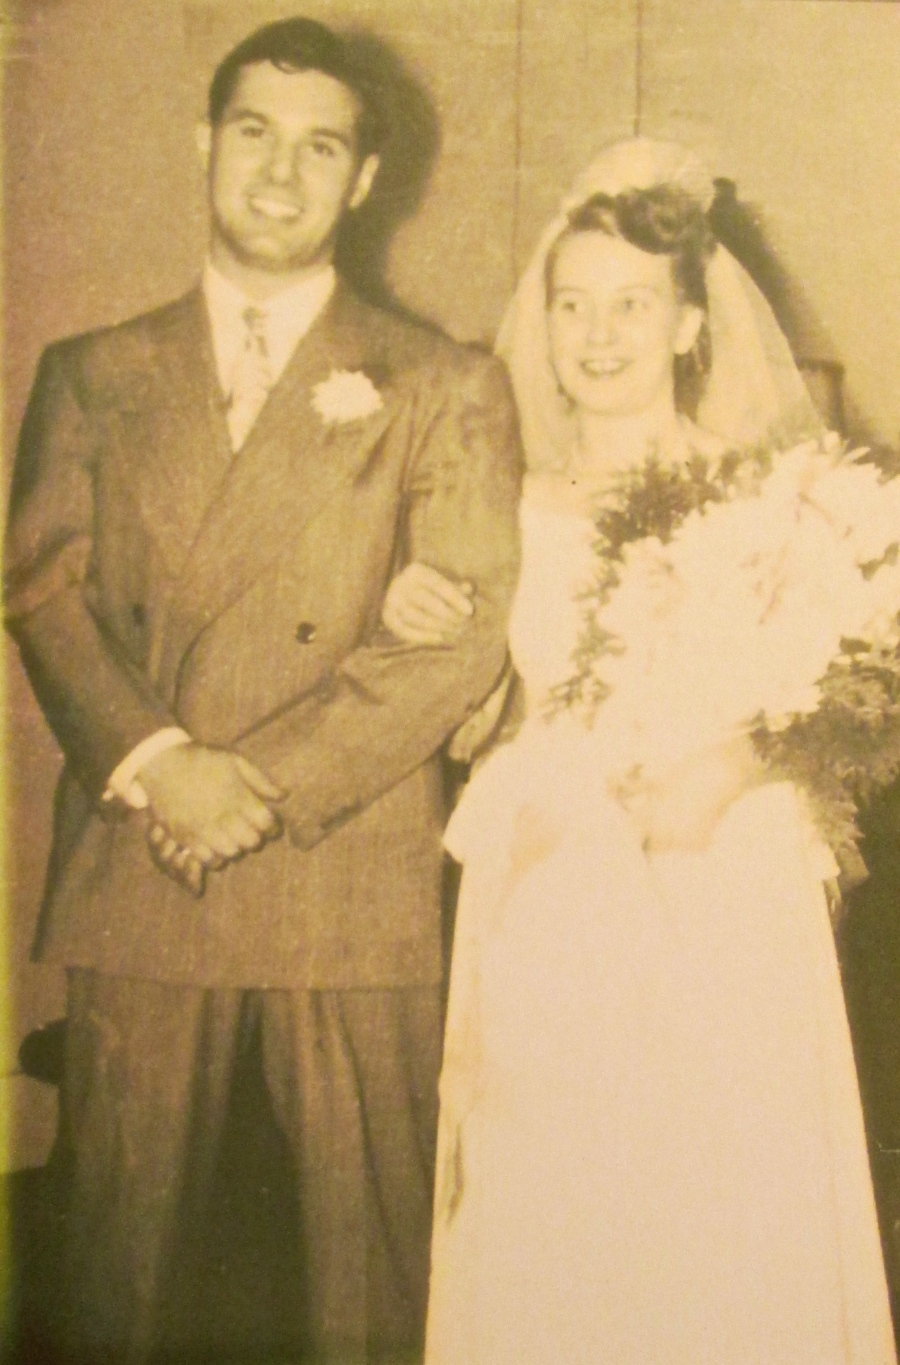 Francis and his wife, Norma Jean, on their wedding day in June 1948 in Pittsburgh, Pa. his hometown. Photo provided